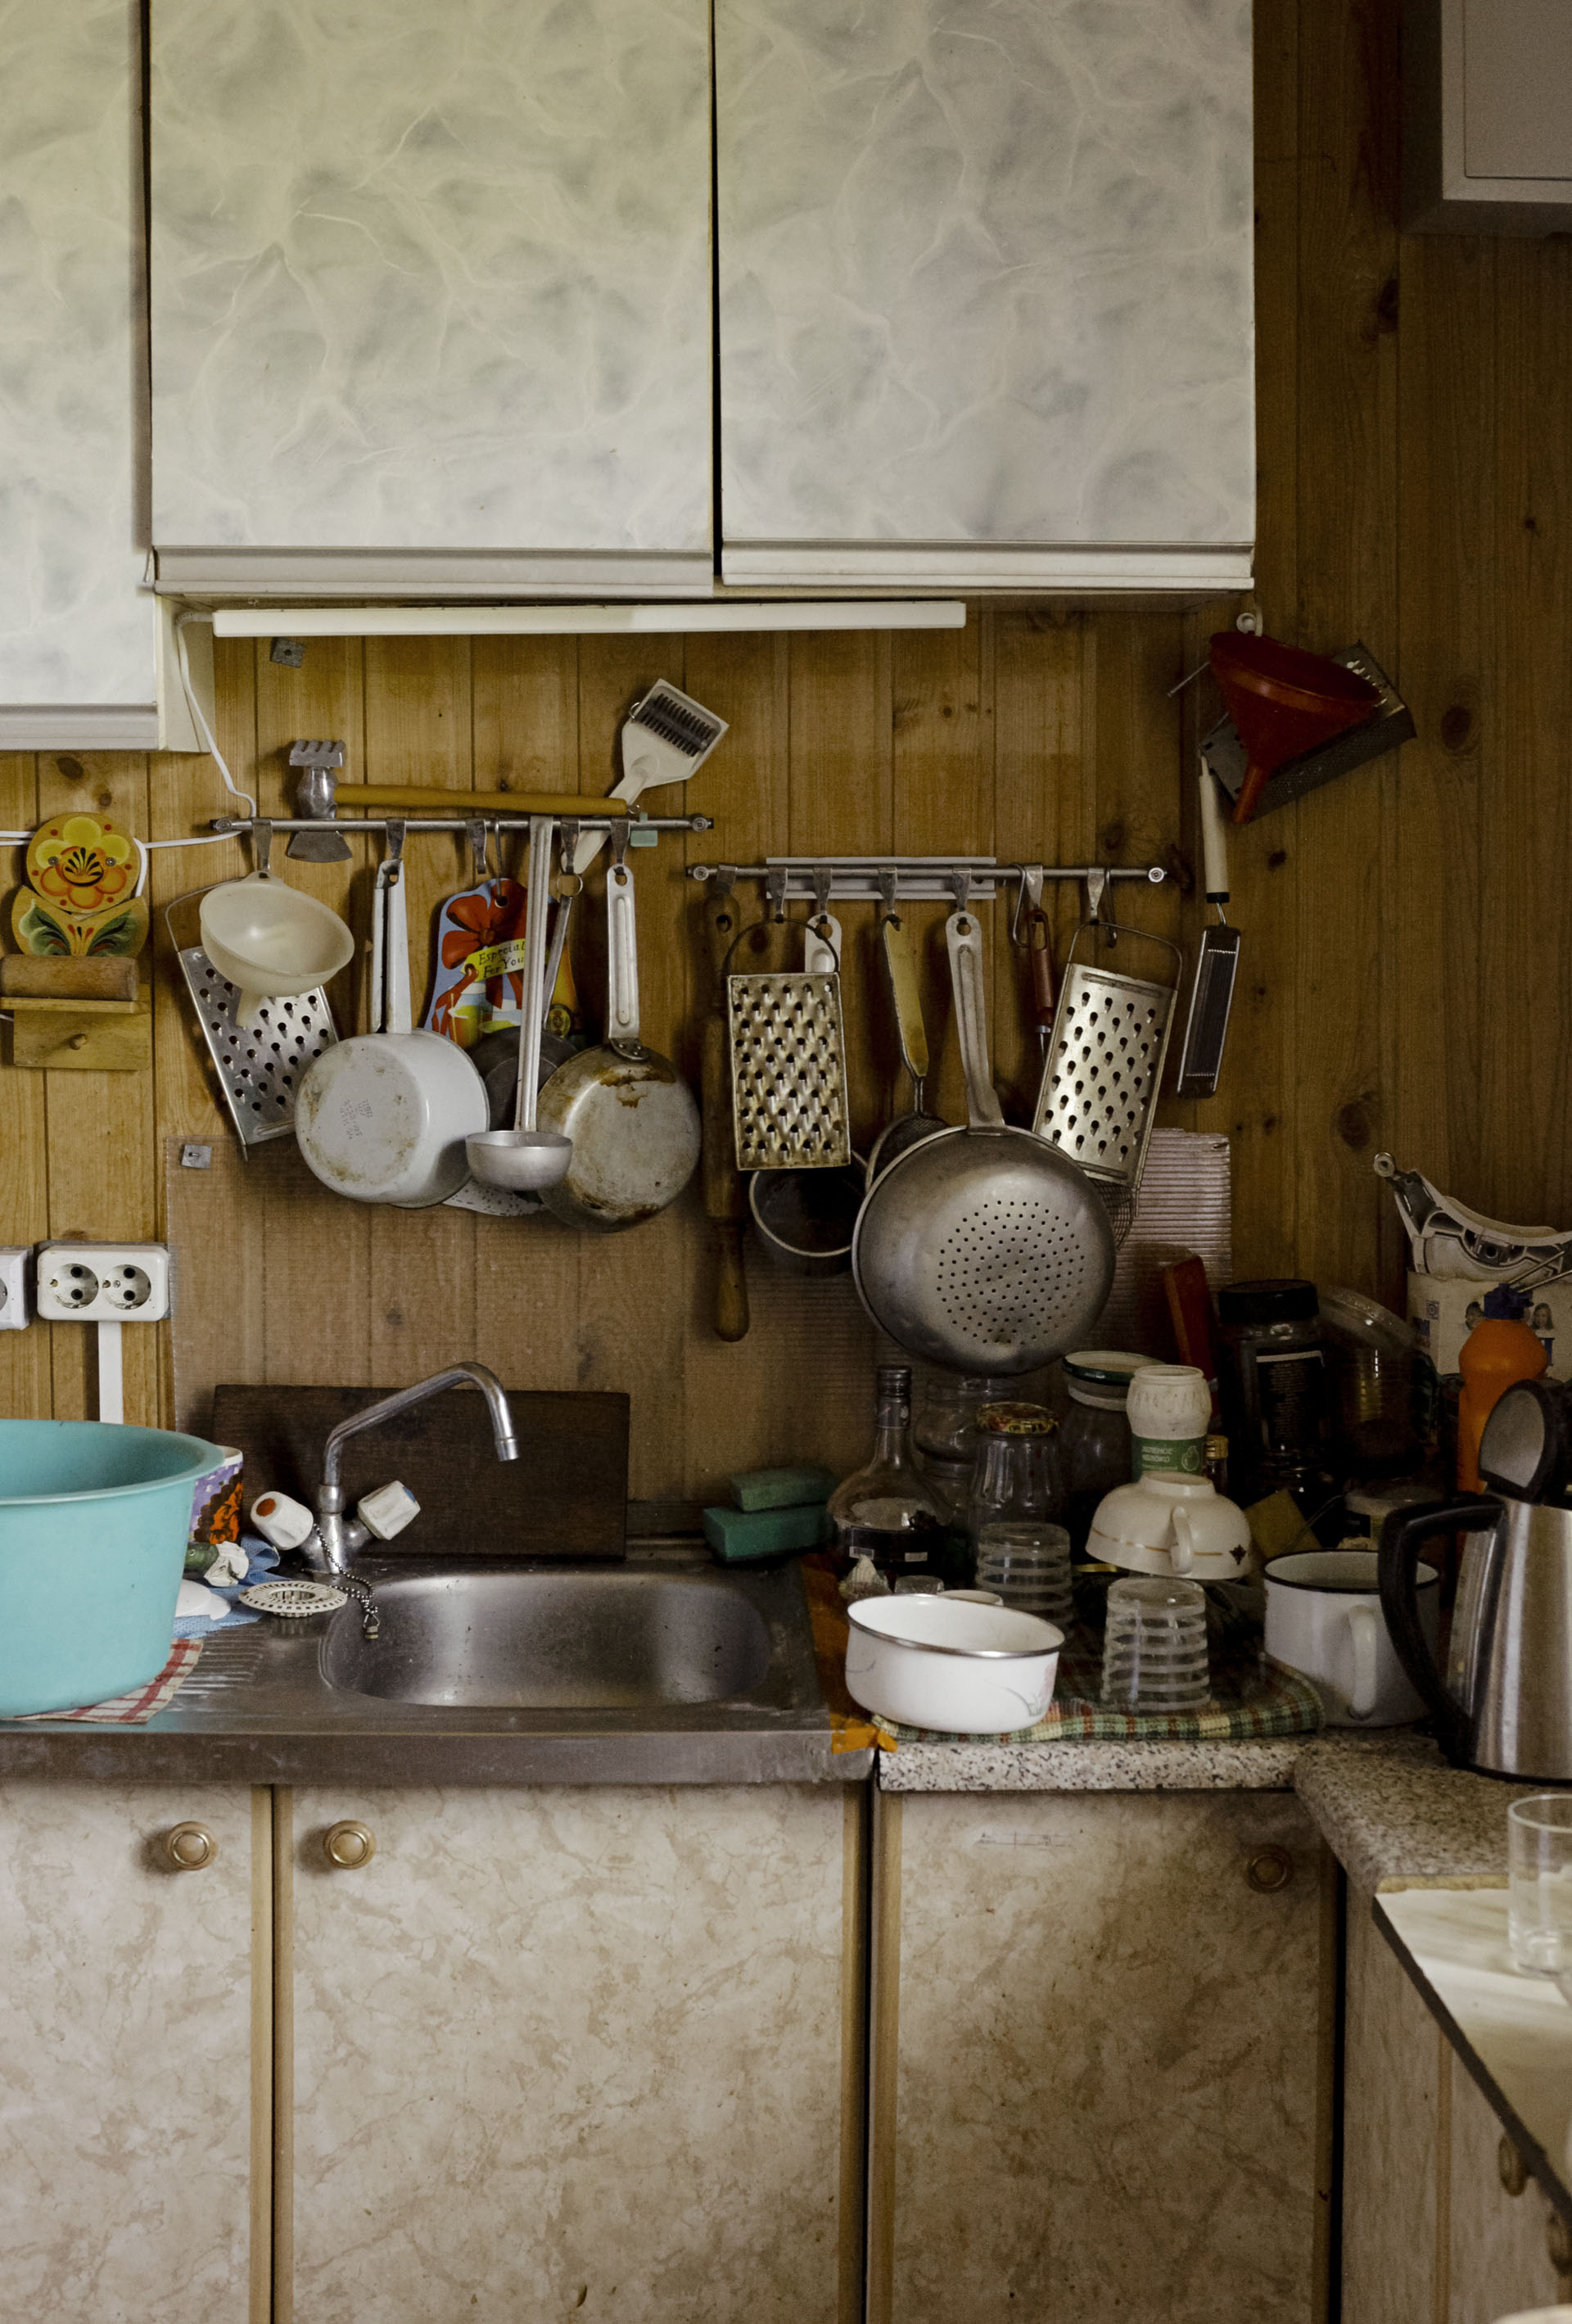 Kitchen of a former cosmonaut's summer home in Russia